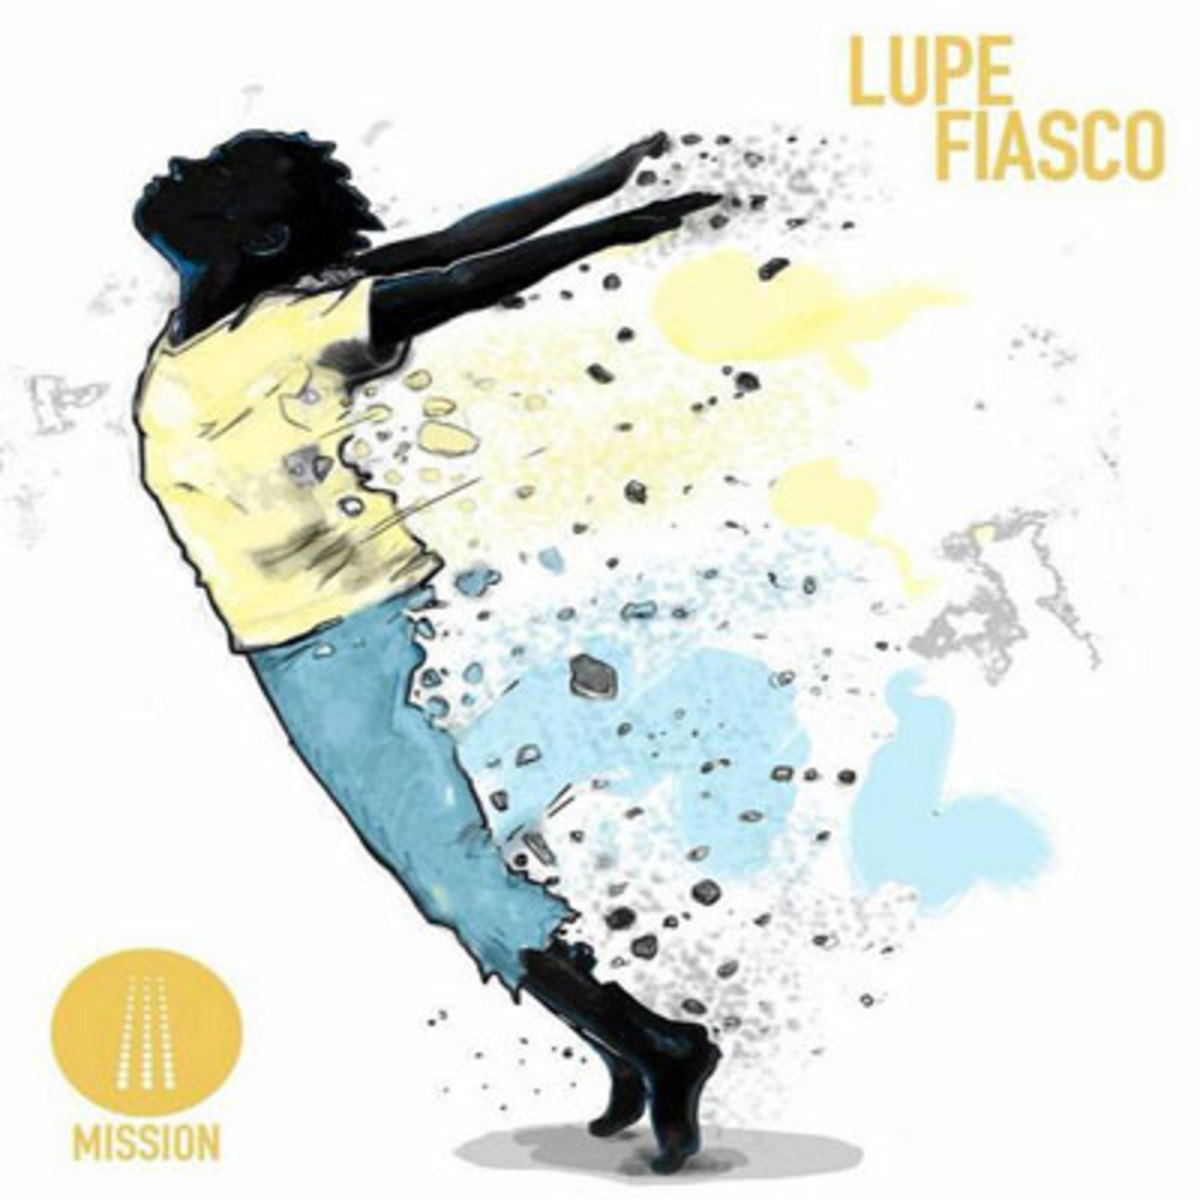 lupefiasco-mission2.jpg